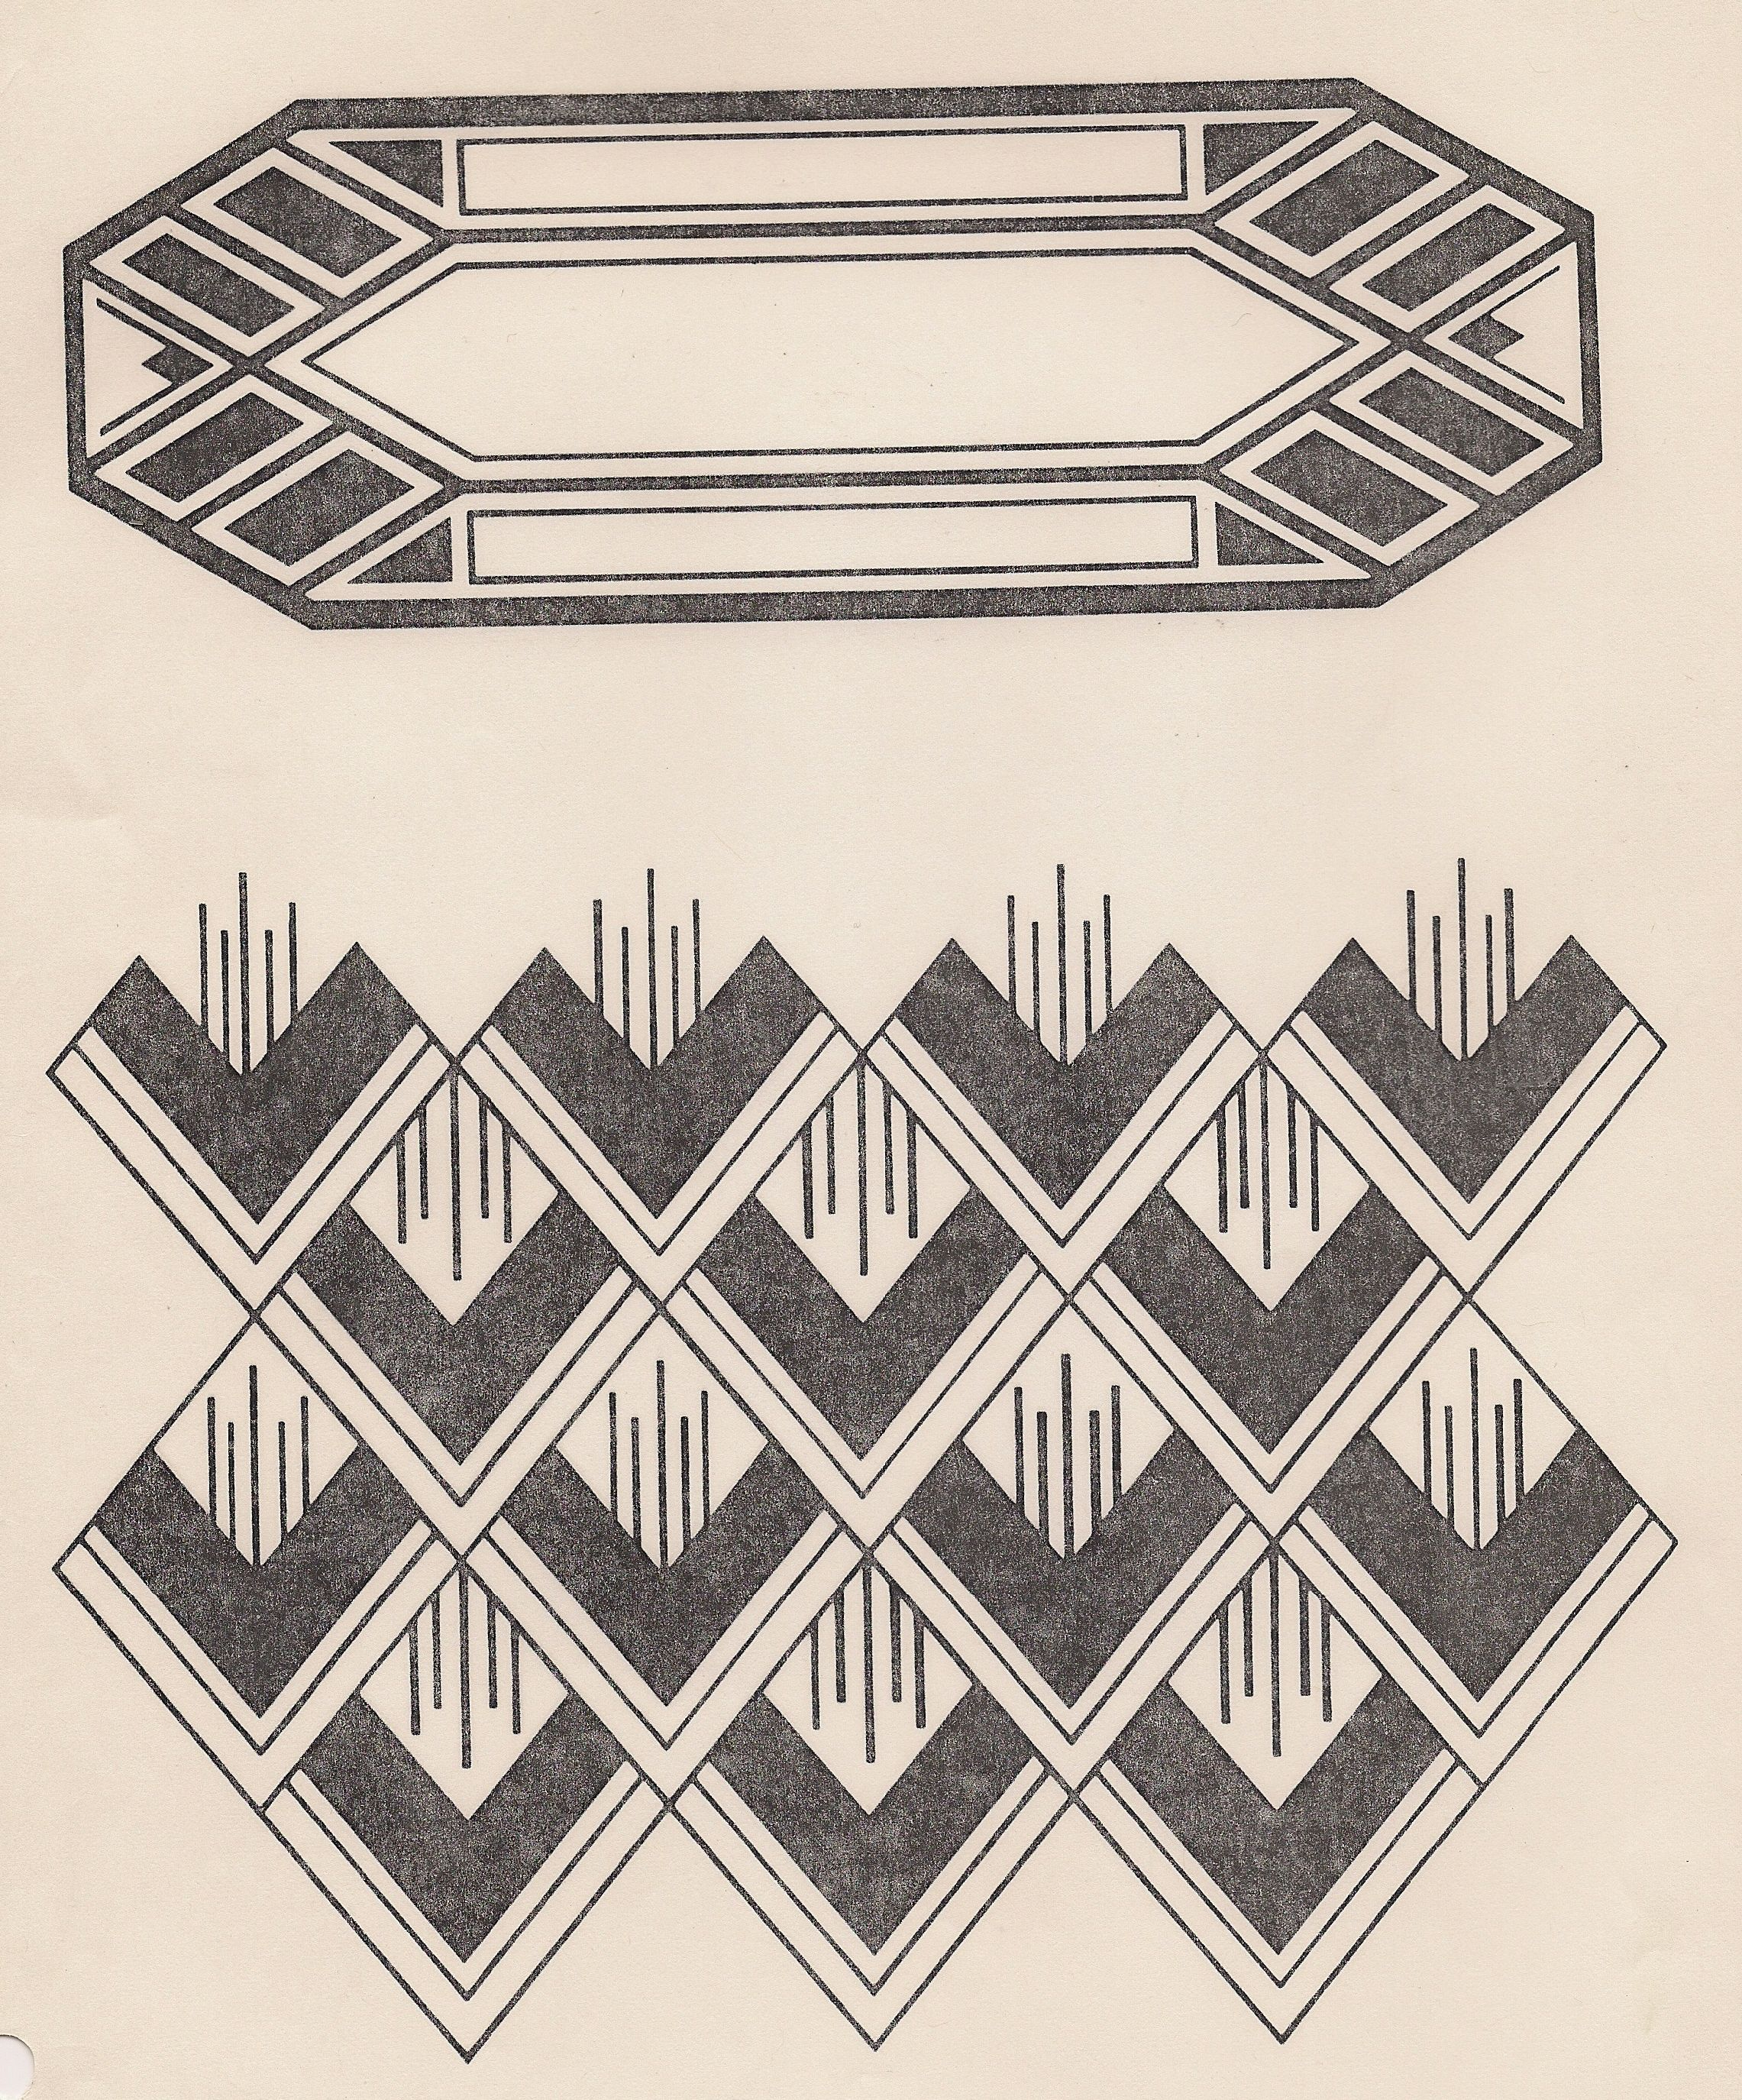 Designer Deko Art Deco Design Design Motifs And Patterns Pinterest